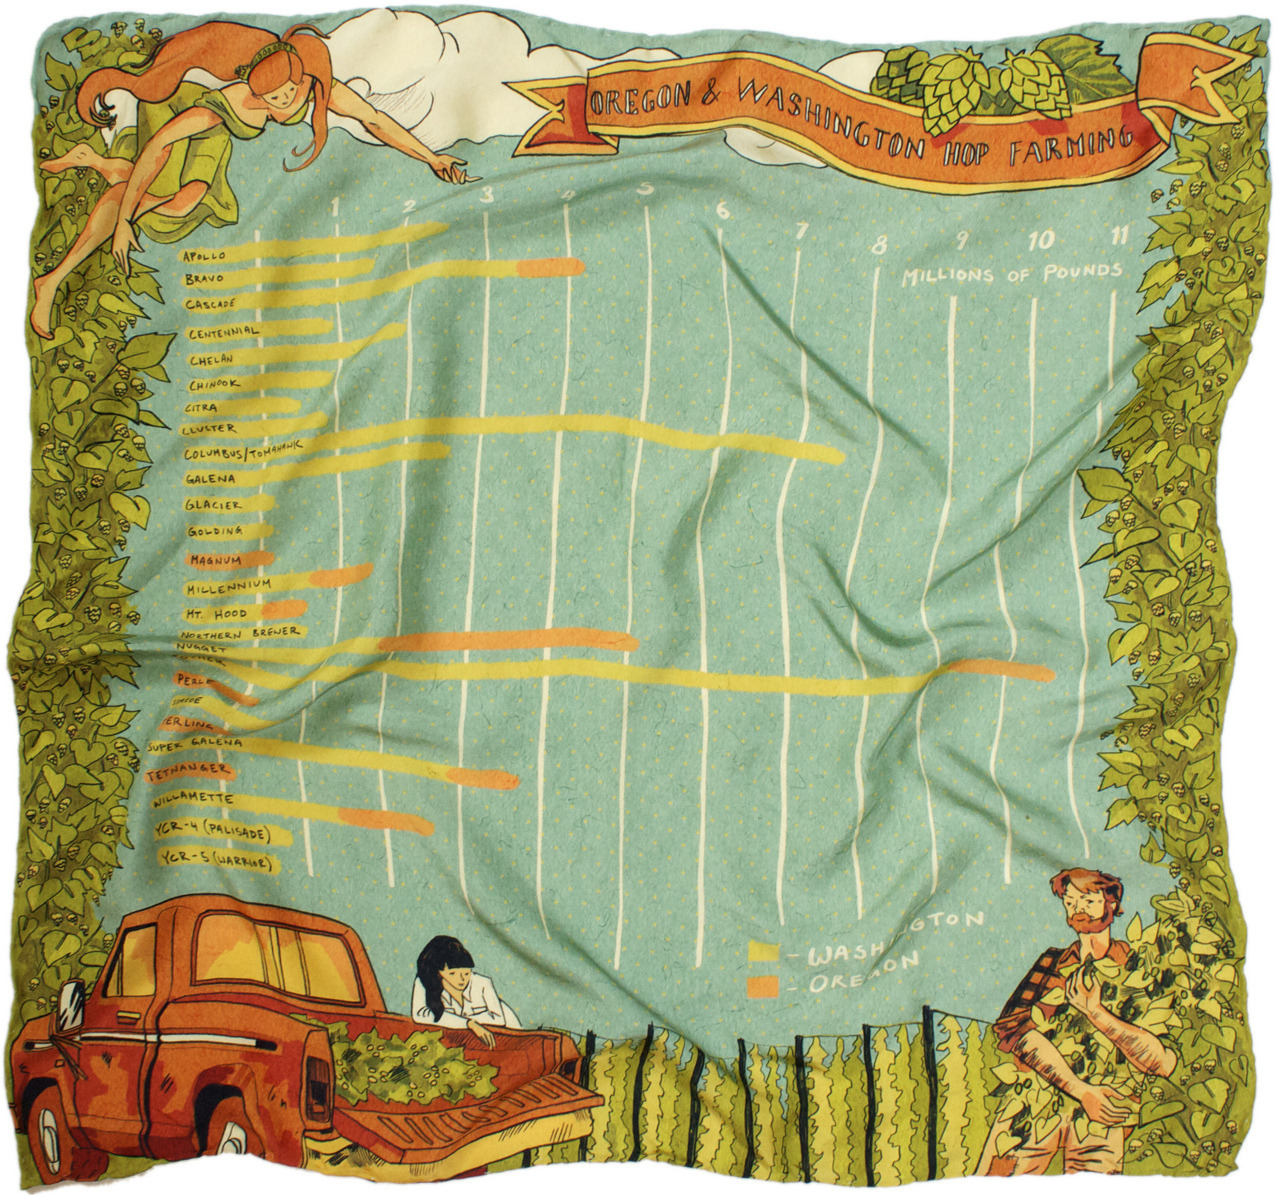 caleblukelinillustration:  Oregon & Washington Hop Farming-part of a series of silk scarves as info-graphics